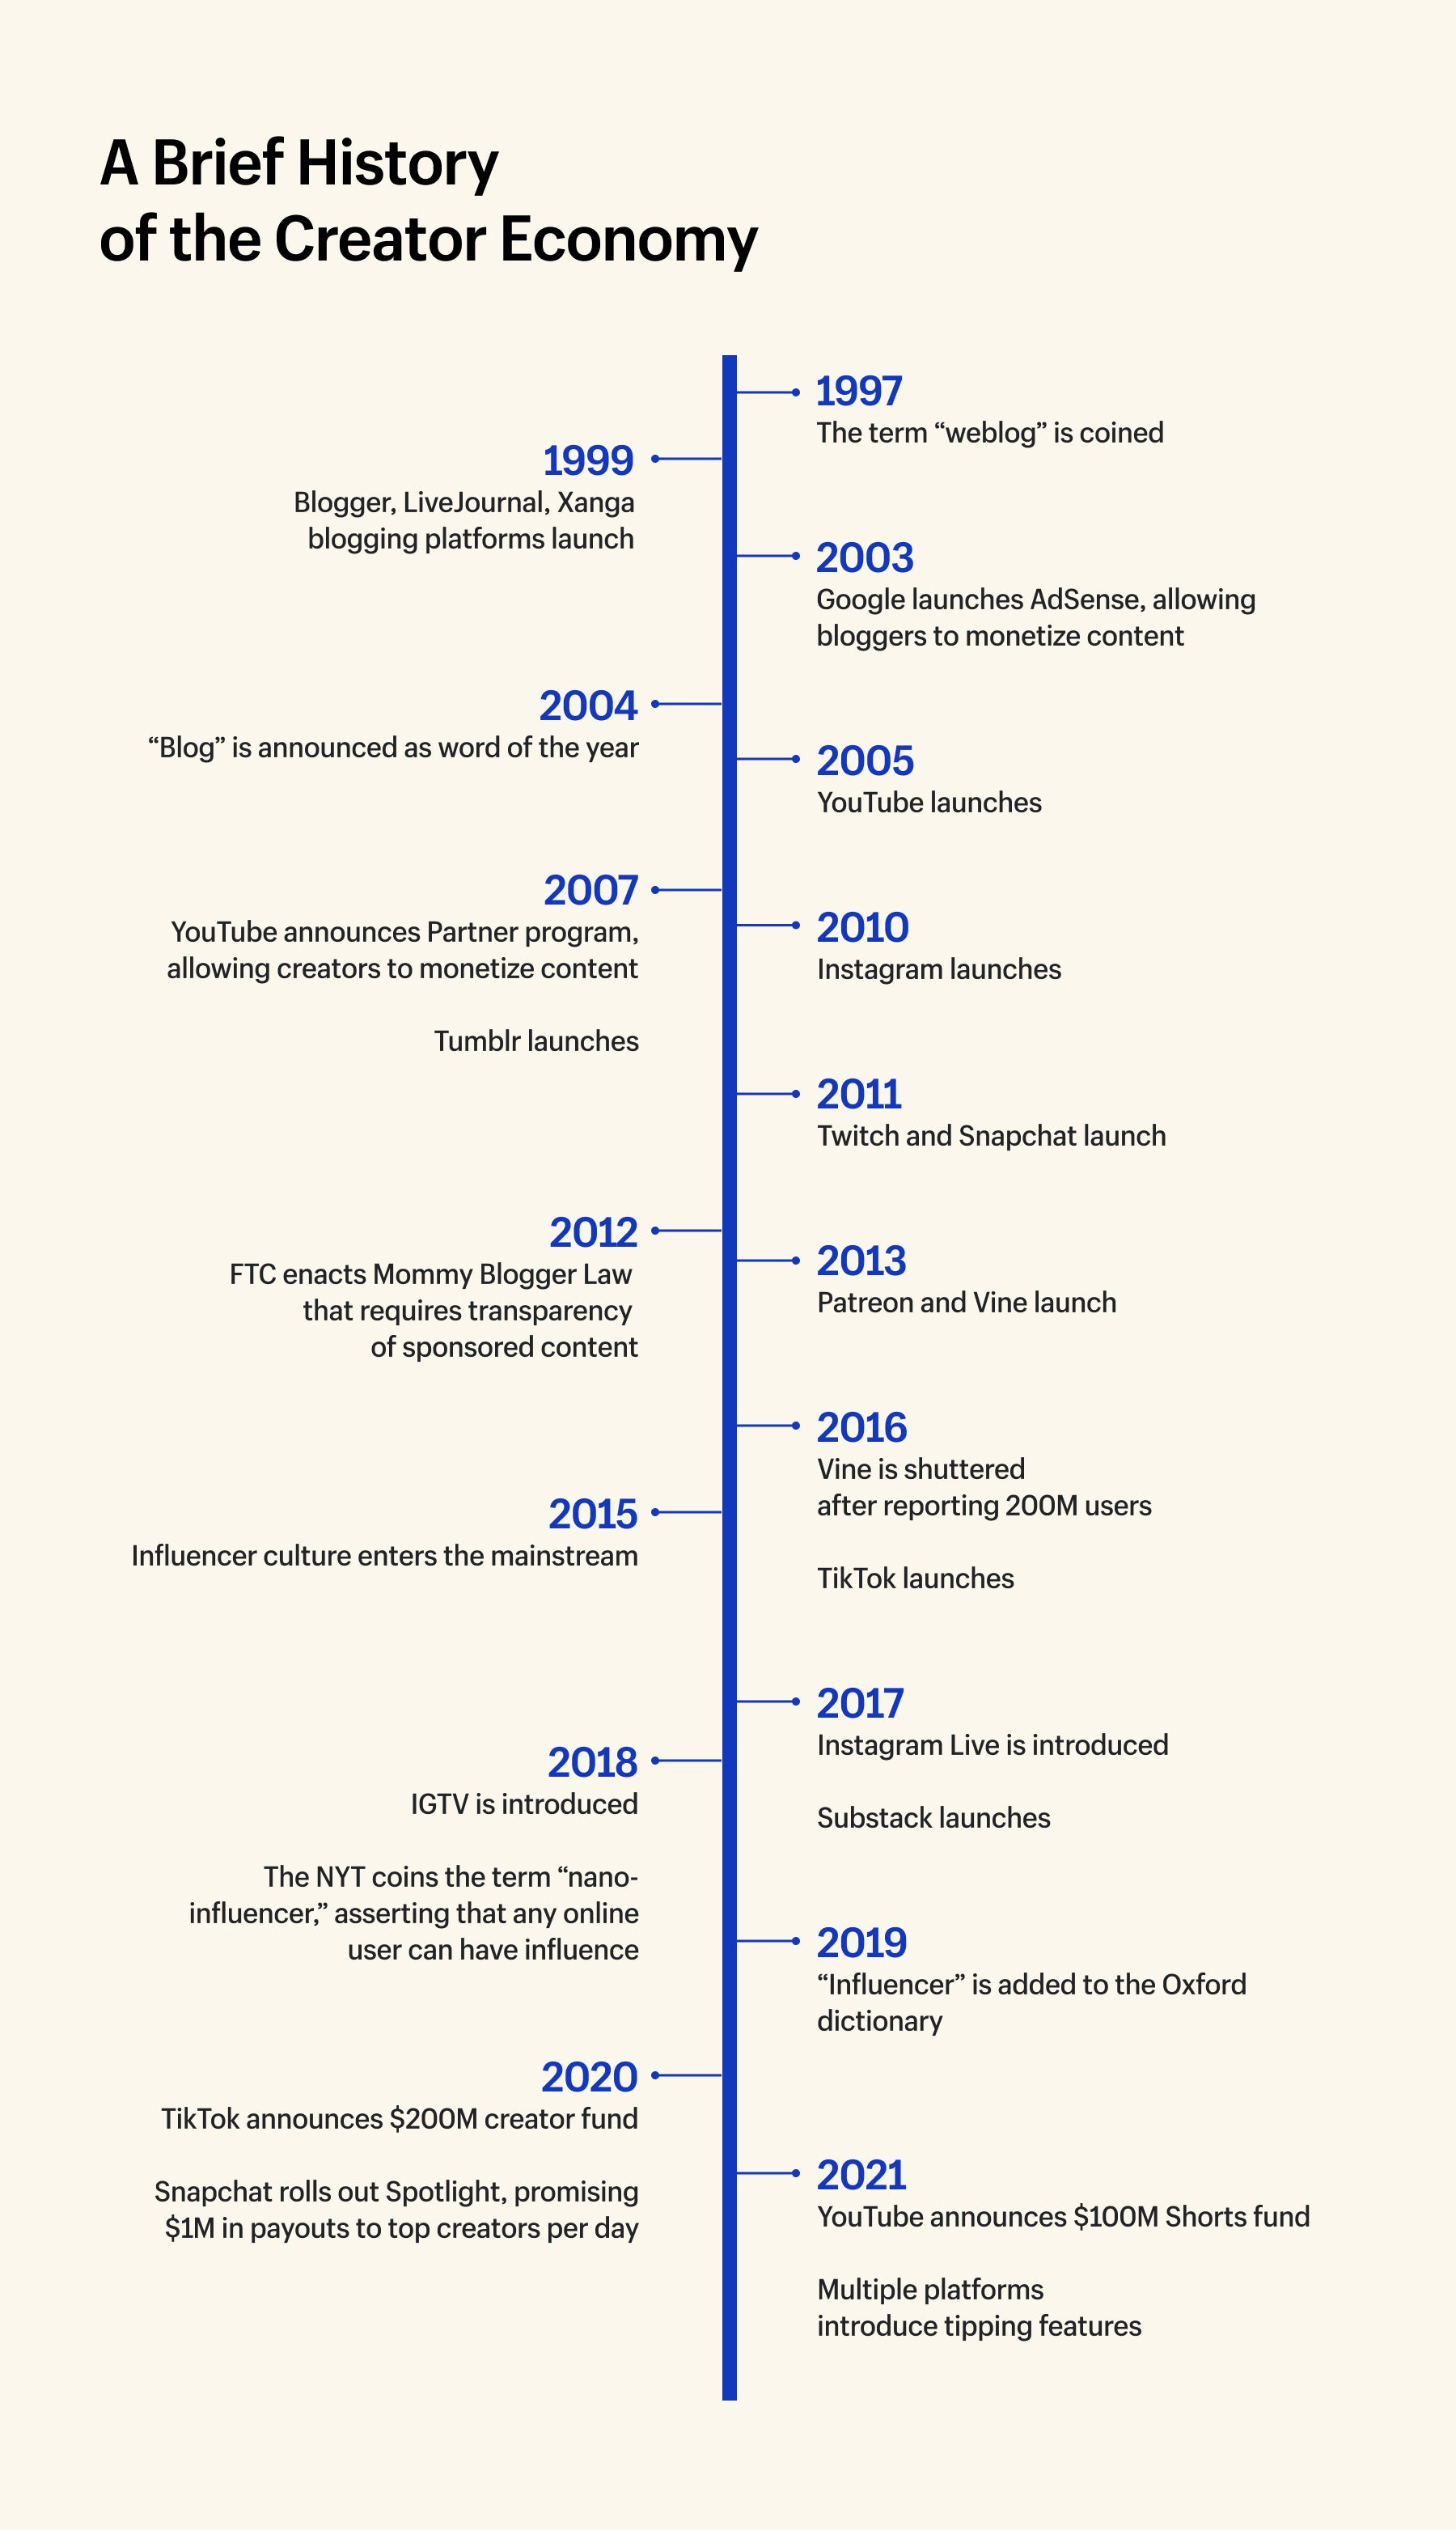 Infographic of the timeline of the creator economy